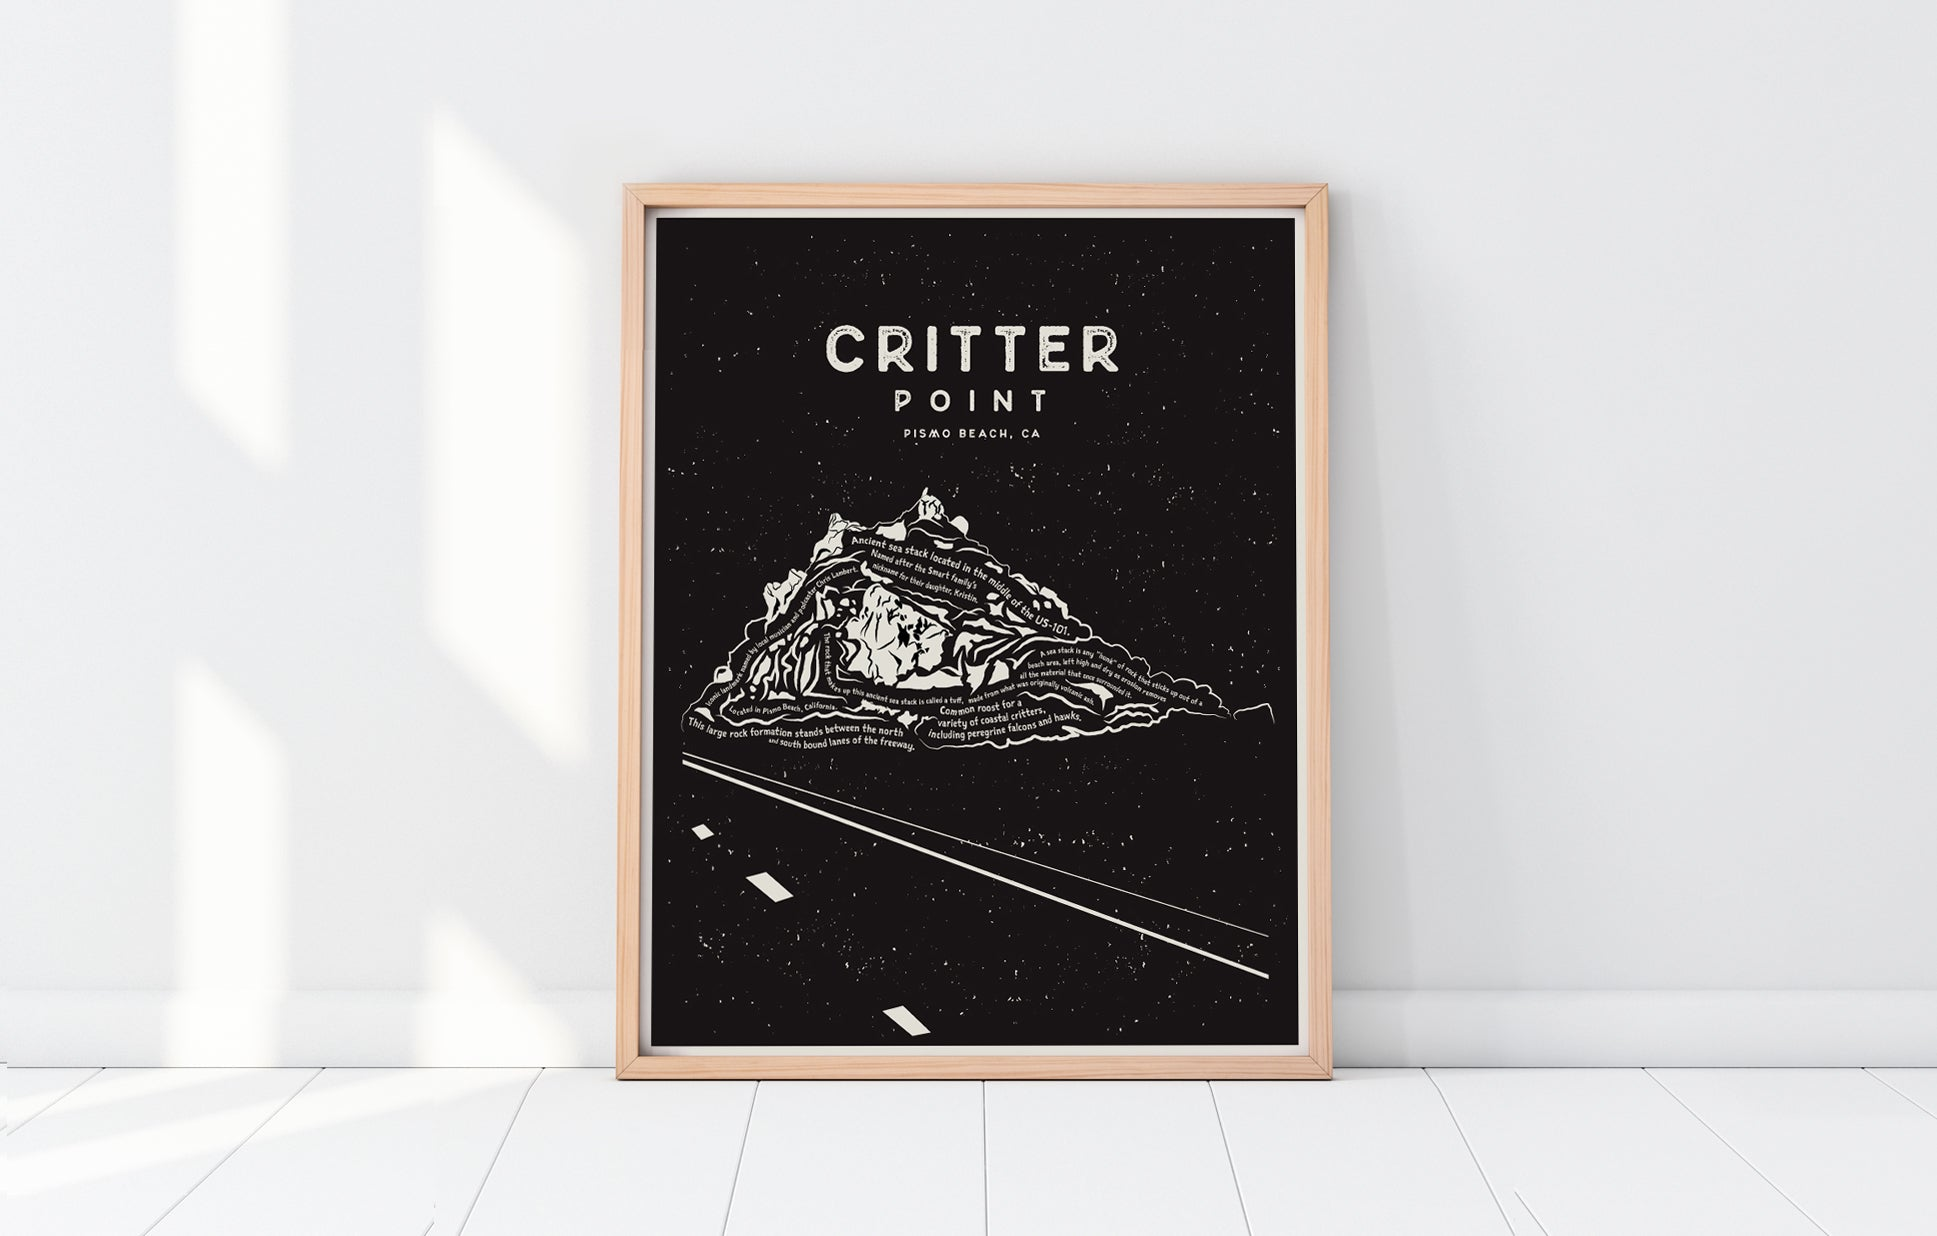 Critter Point Art Print (Kristin Smart Scholarship)